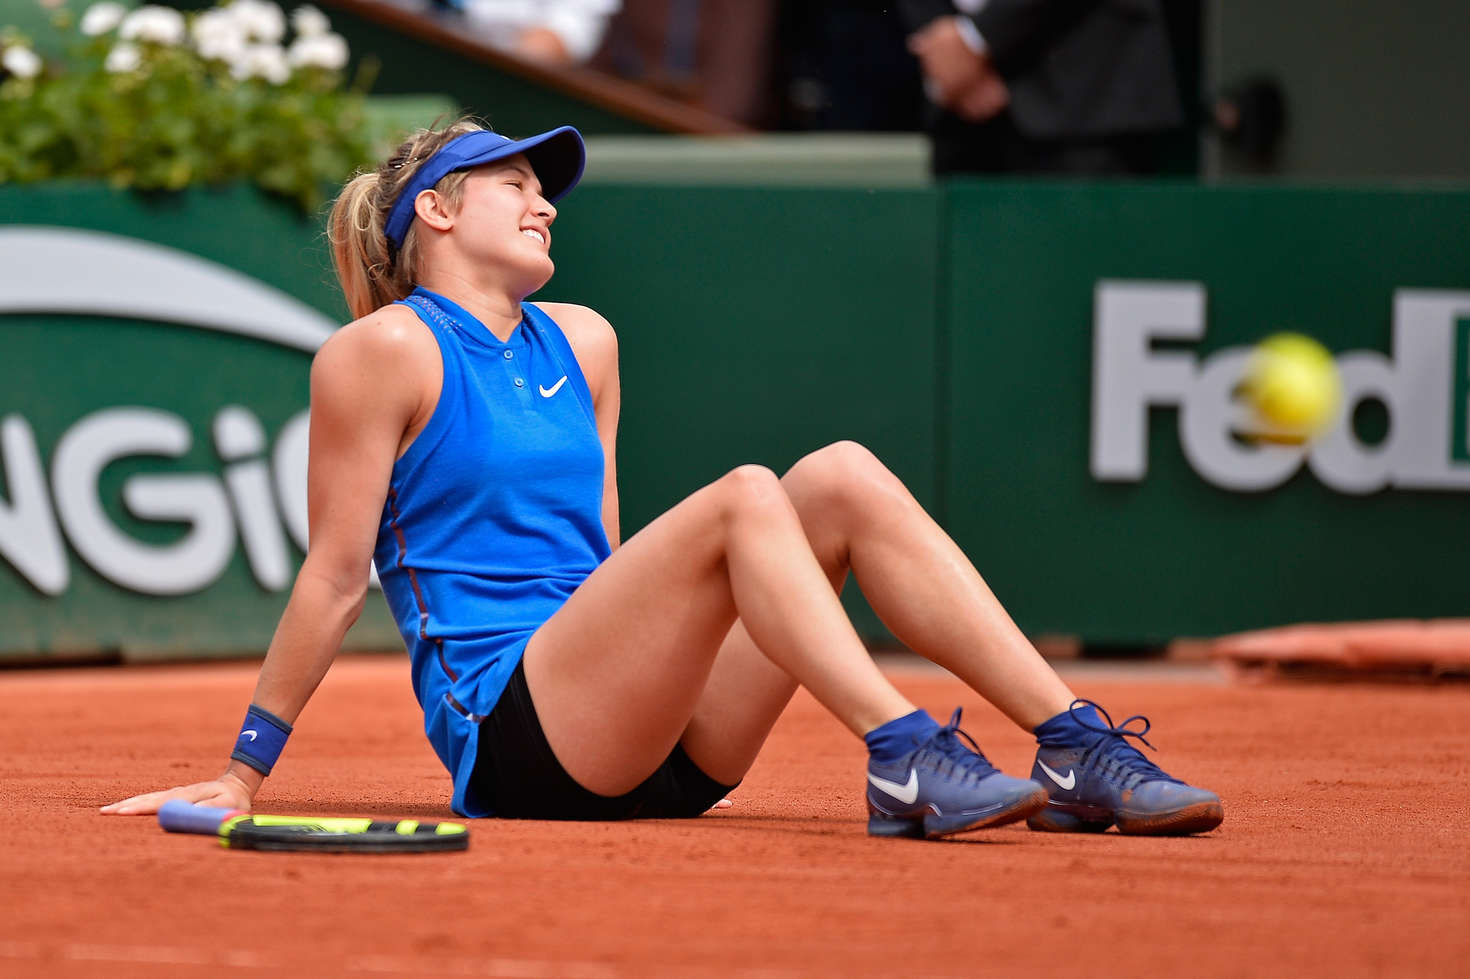 eugenie bouchard roland garros 2016 11 gotceleb. Black Bedroom Furniture Sets. Home Design Ideas